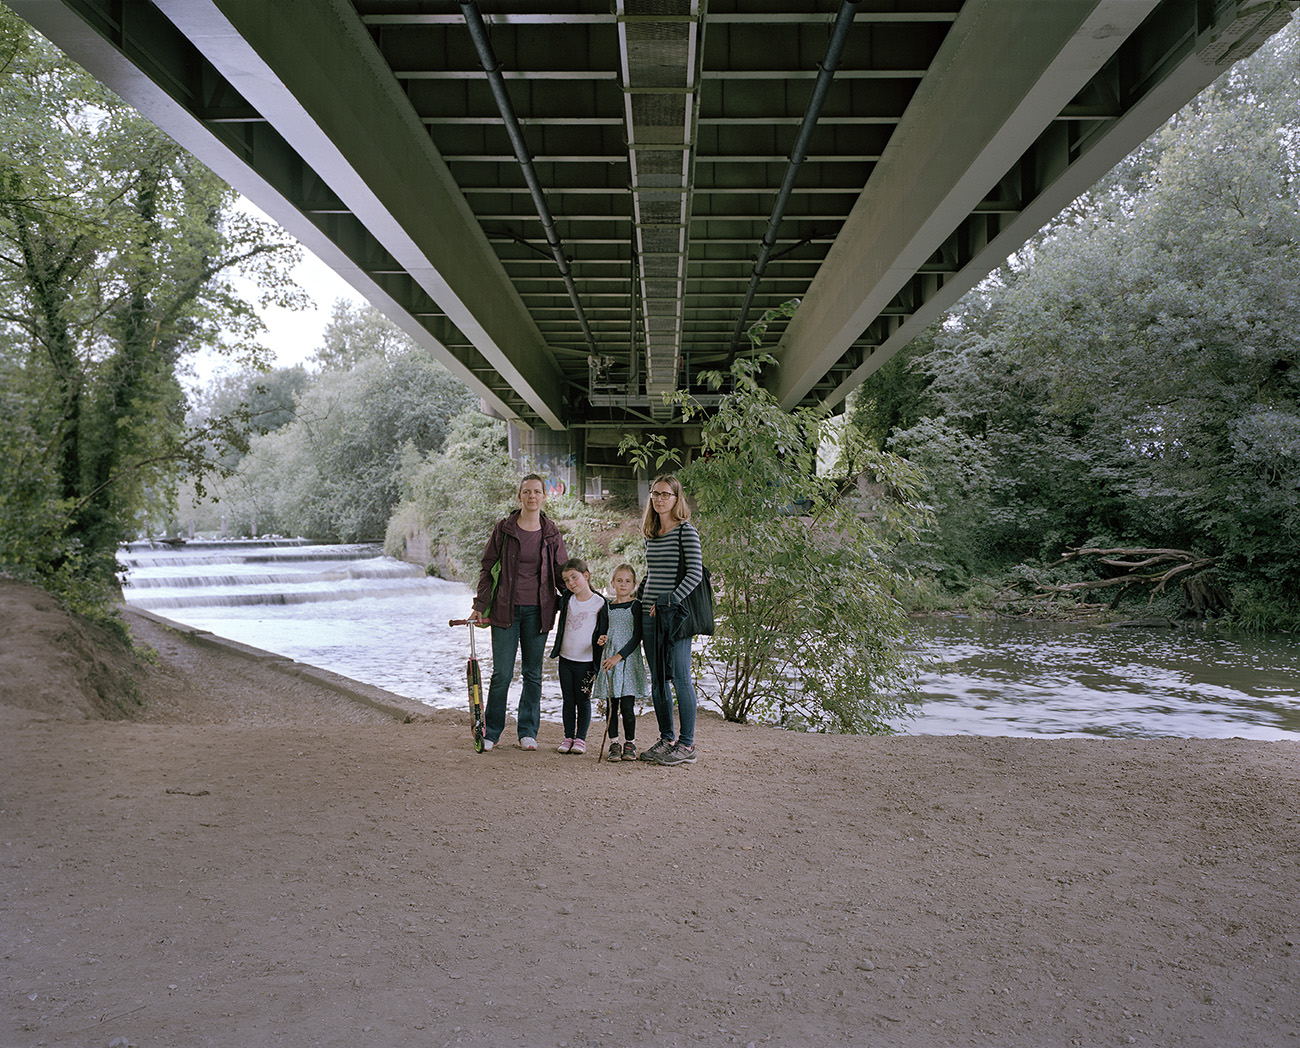 A family photographed by Andrew Meredith beneath the M4 motorway